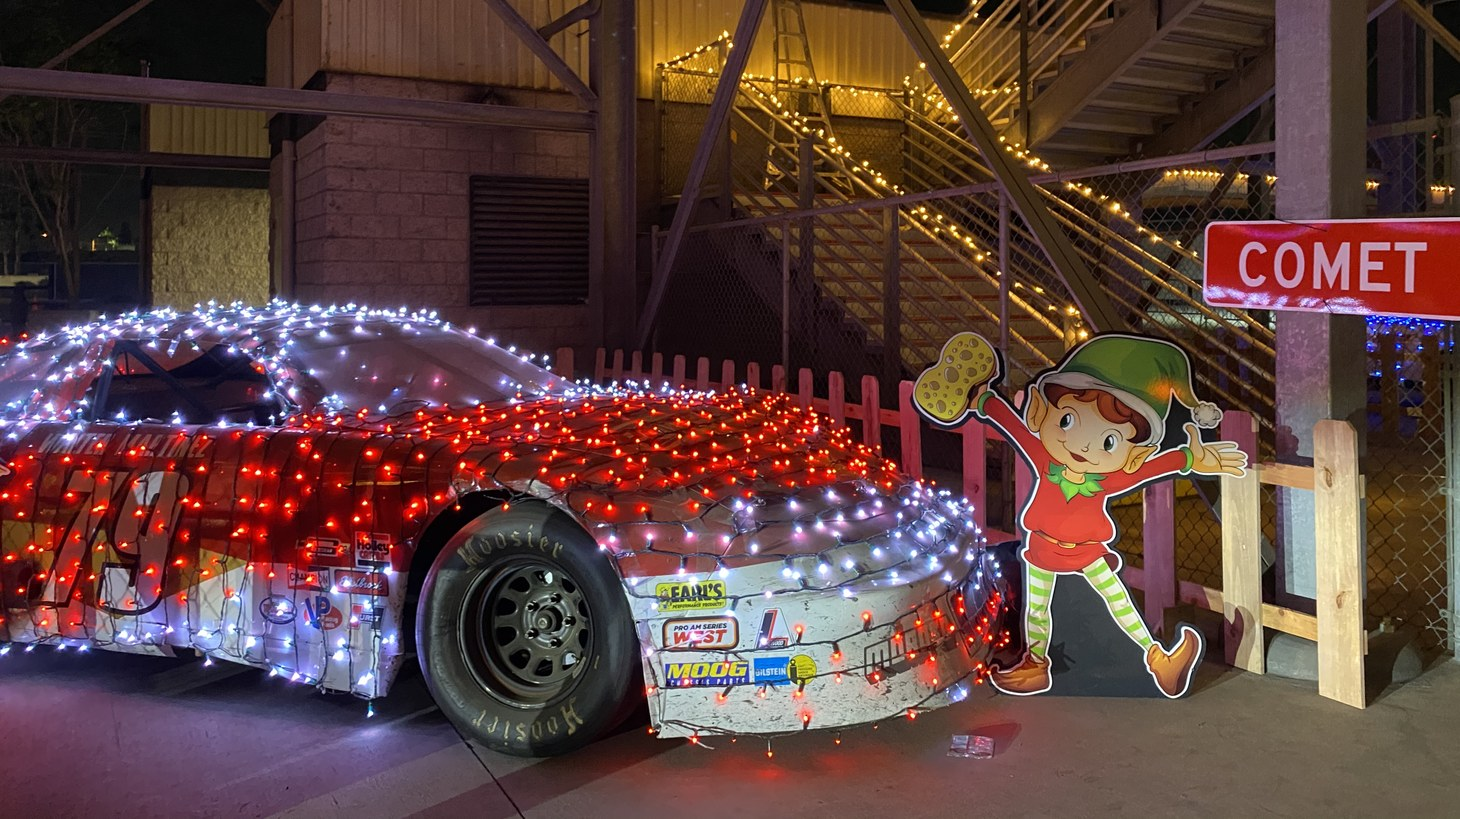 The Irwindale Speedway has gone all-in on holiday lights while staying true to its motorsports roots.